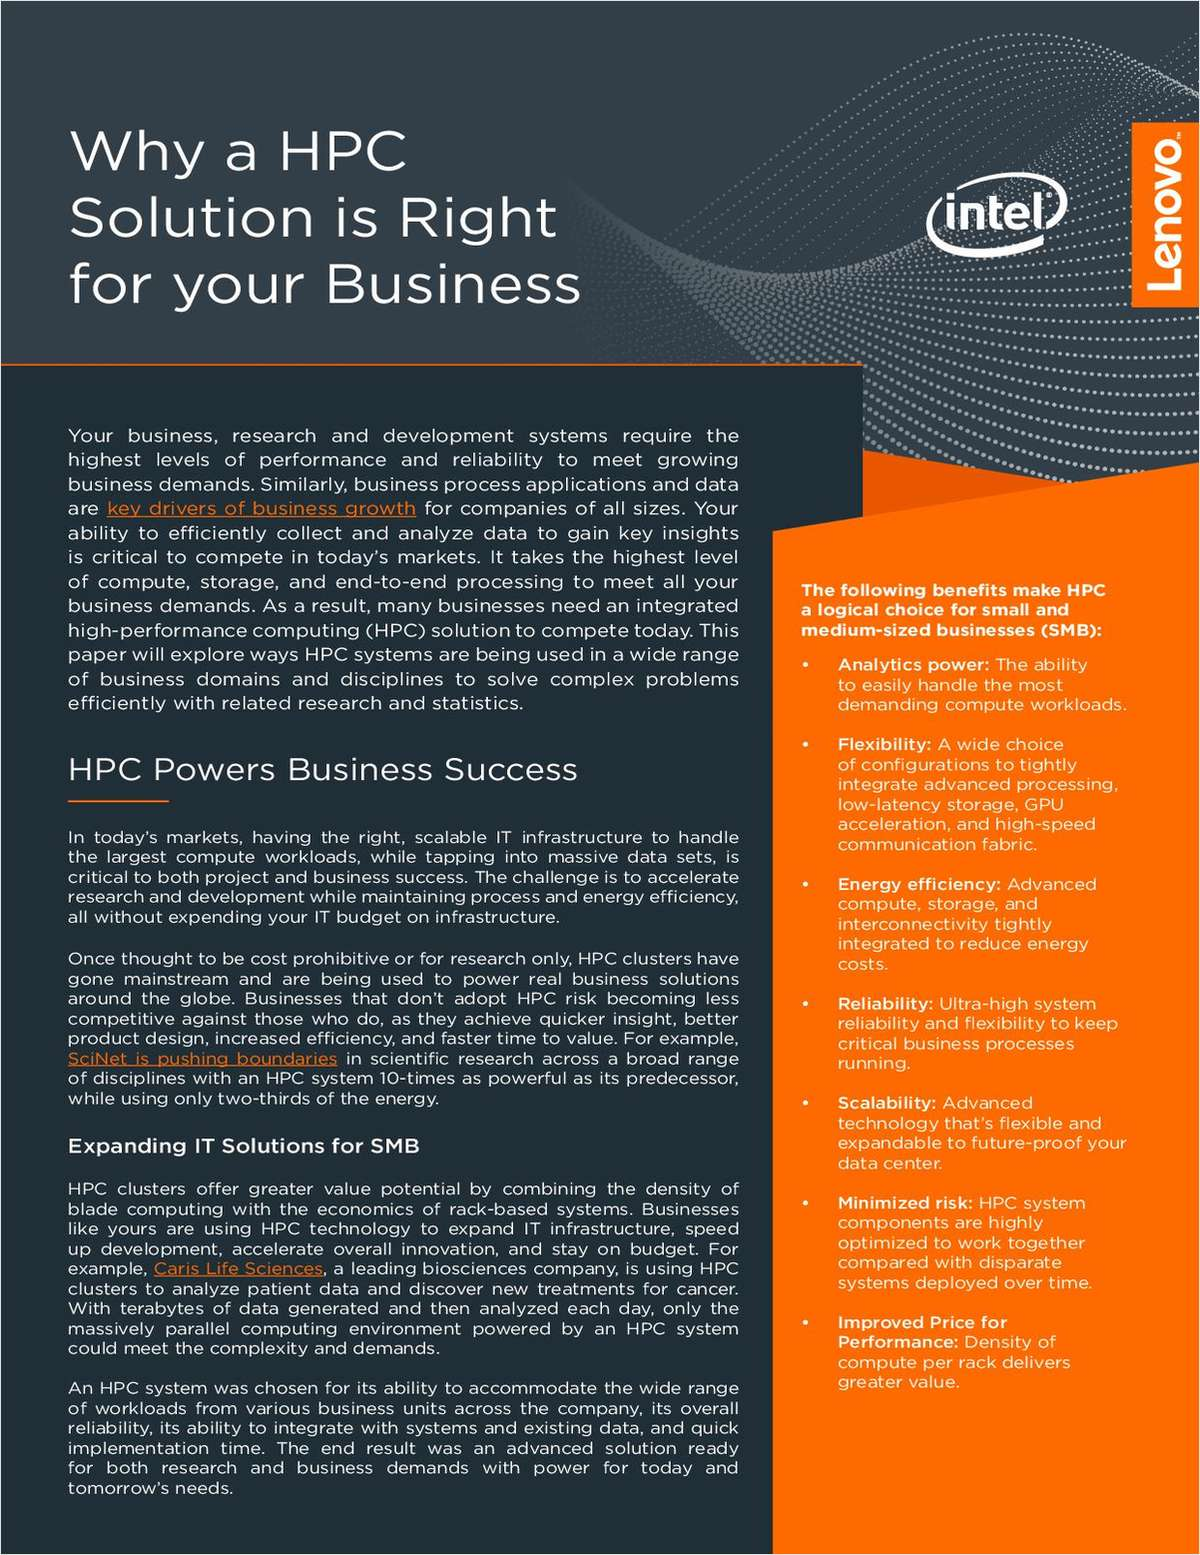 Why a HPC Solution is Right for Your Business